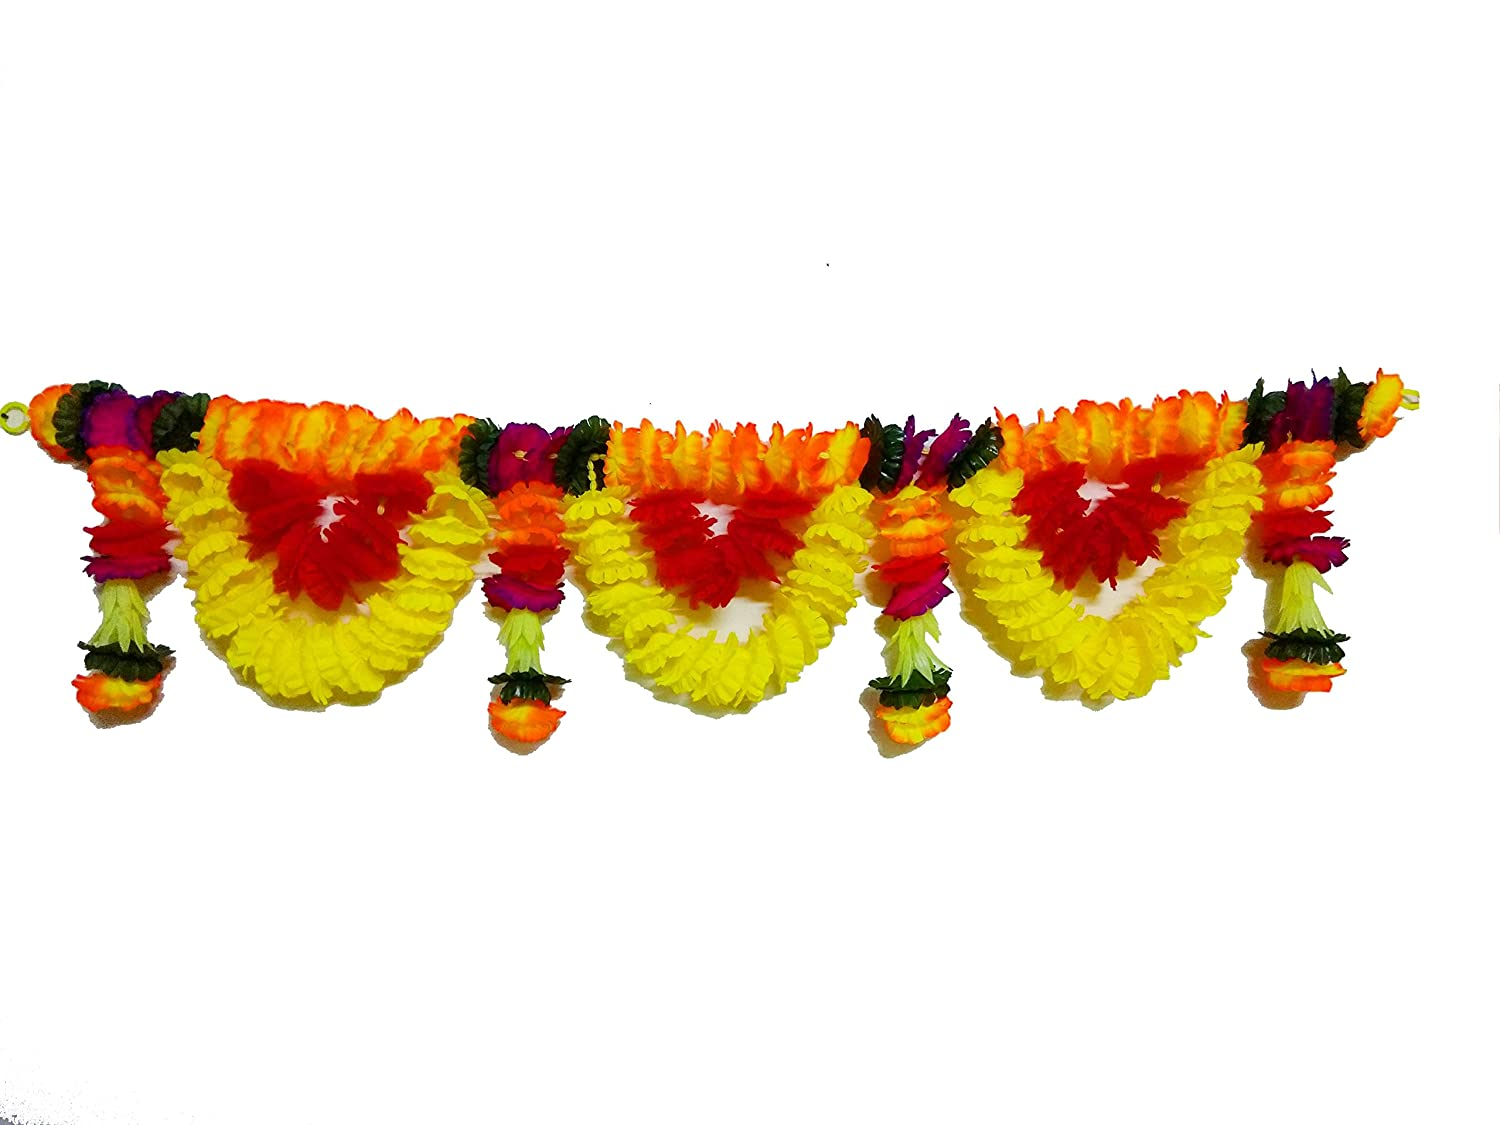 3dd1e3e0b5d AFARZA Cloth and Plastic Artificial Flower Toran Garland, Main Door Hanging  for Home Decoration (42 x 8 inches, Multicolour)